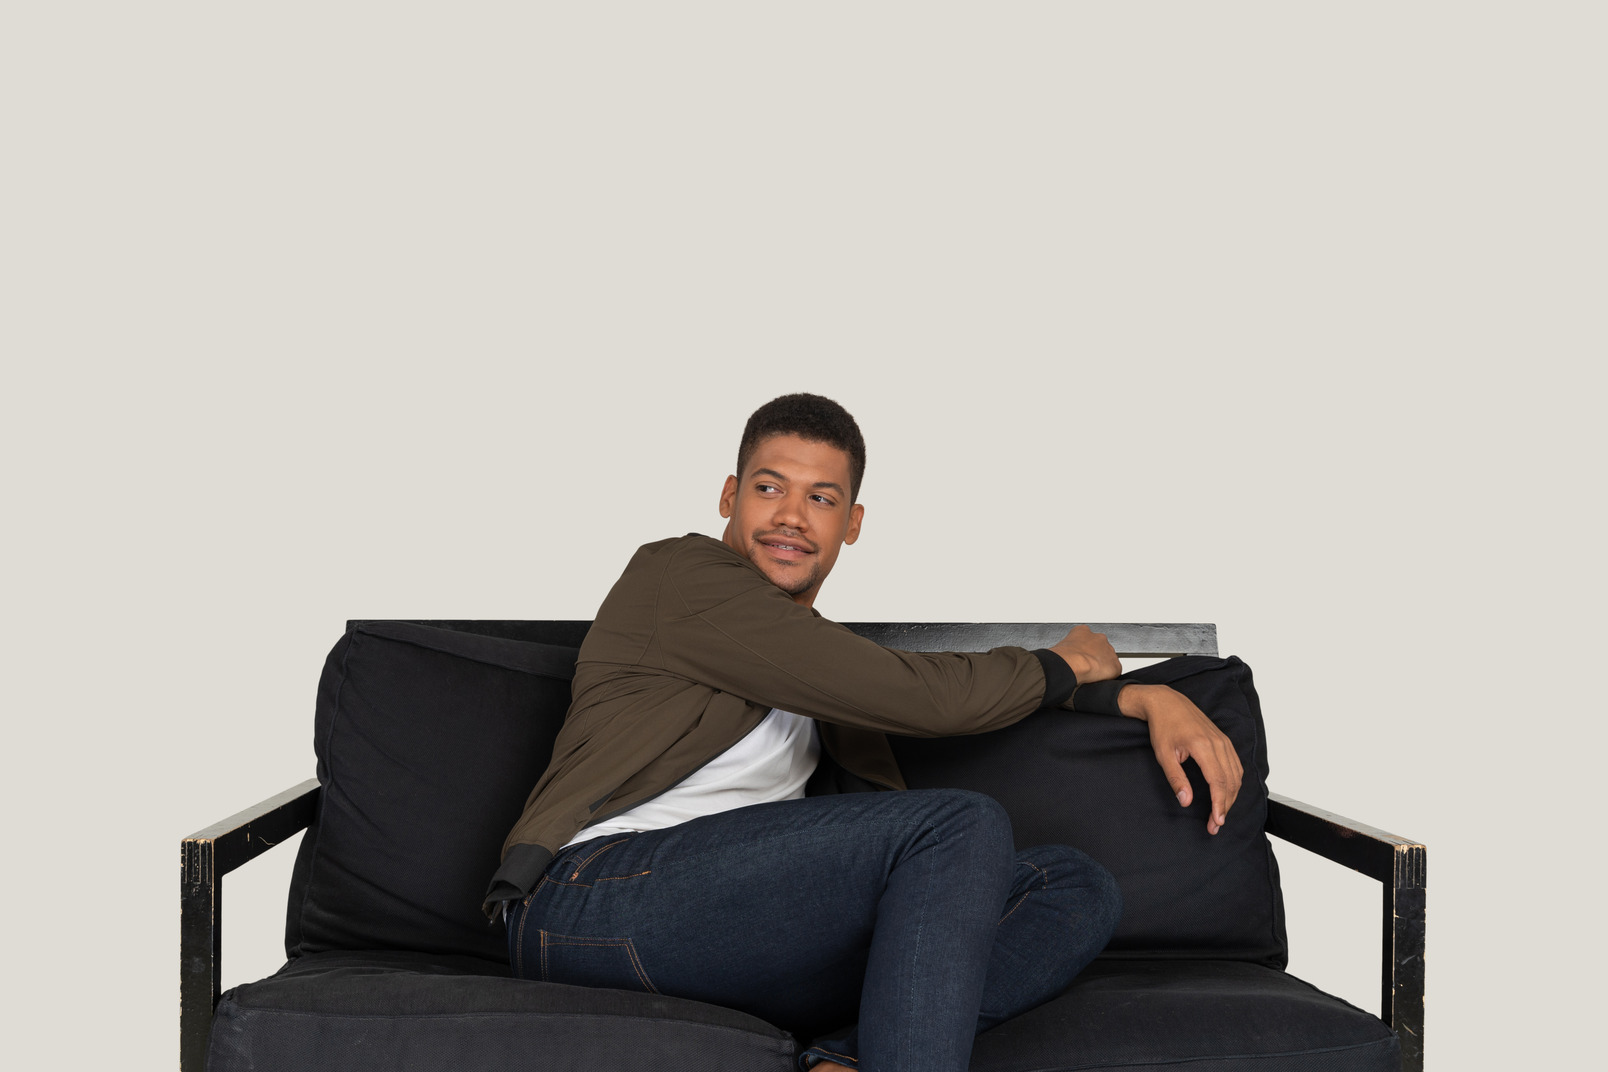 Smiling young man sitting on the sofa